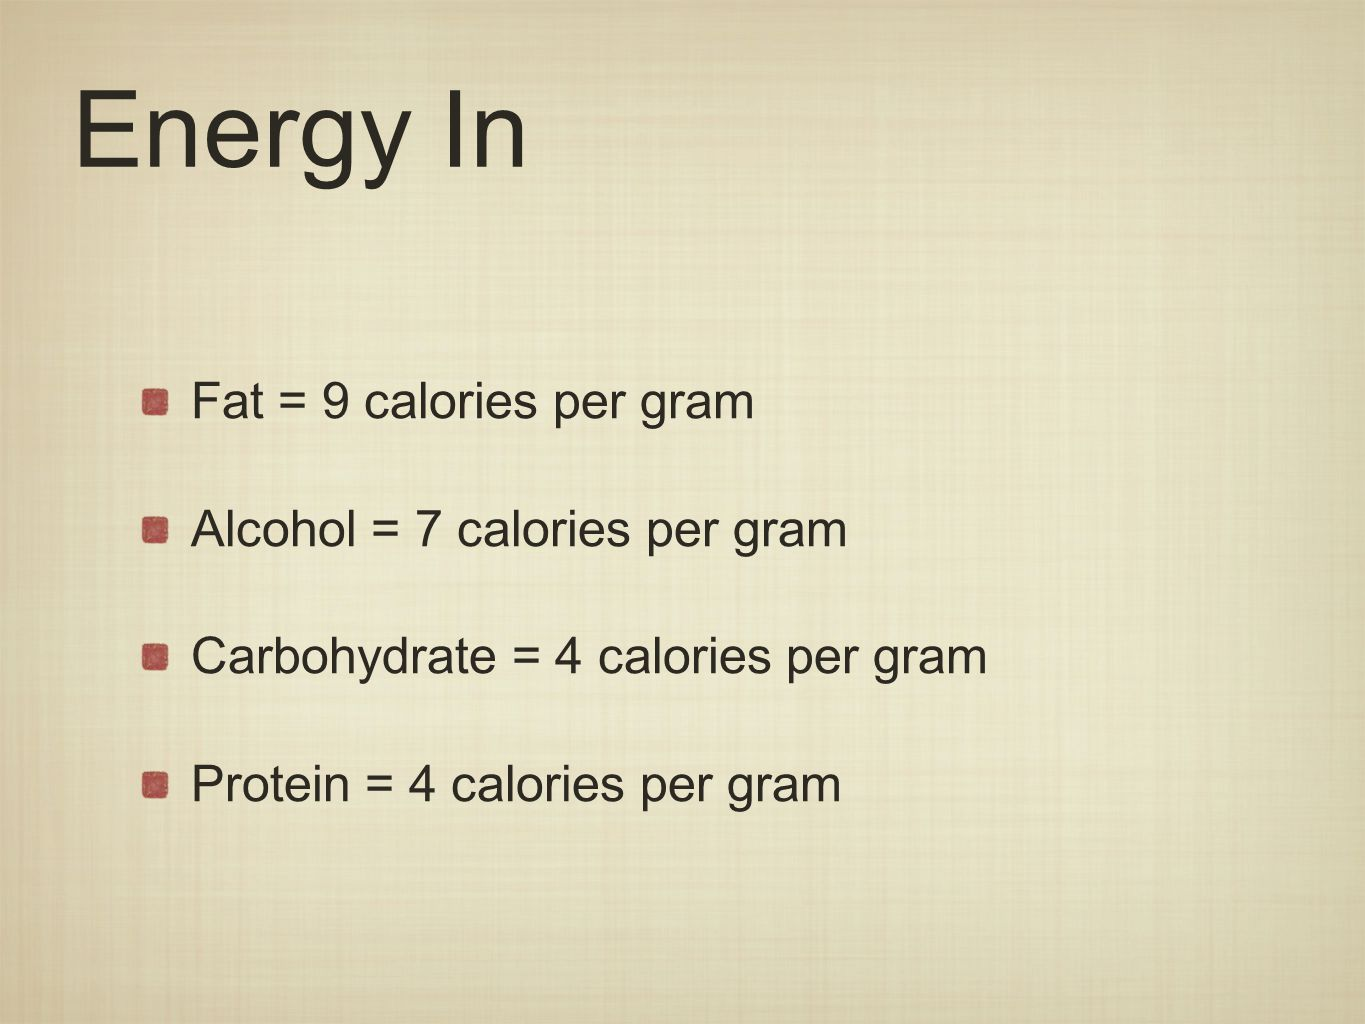 Energy In Fat = 9 calories per gram Alcohol = 7 calories per gram Carbohydrate = 4 calories per gram Protein = 4 calories per gram